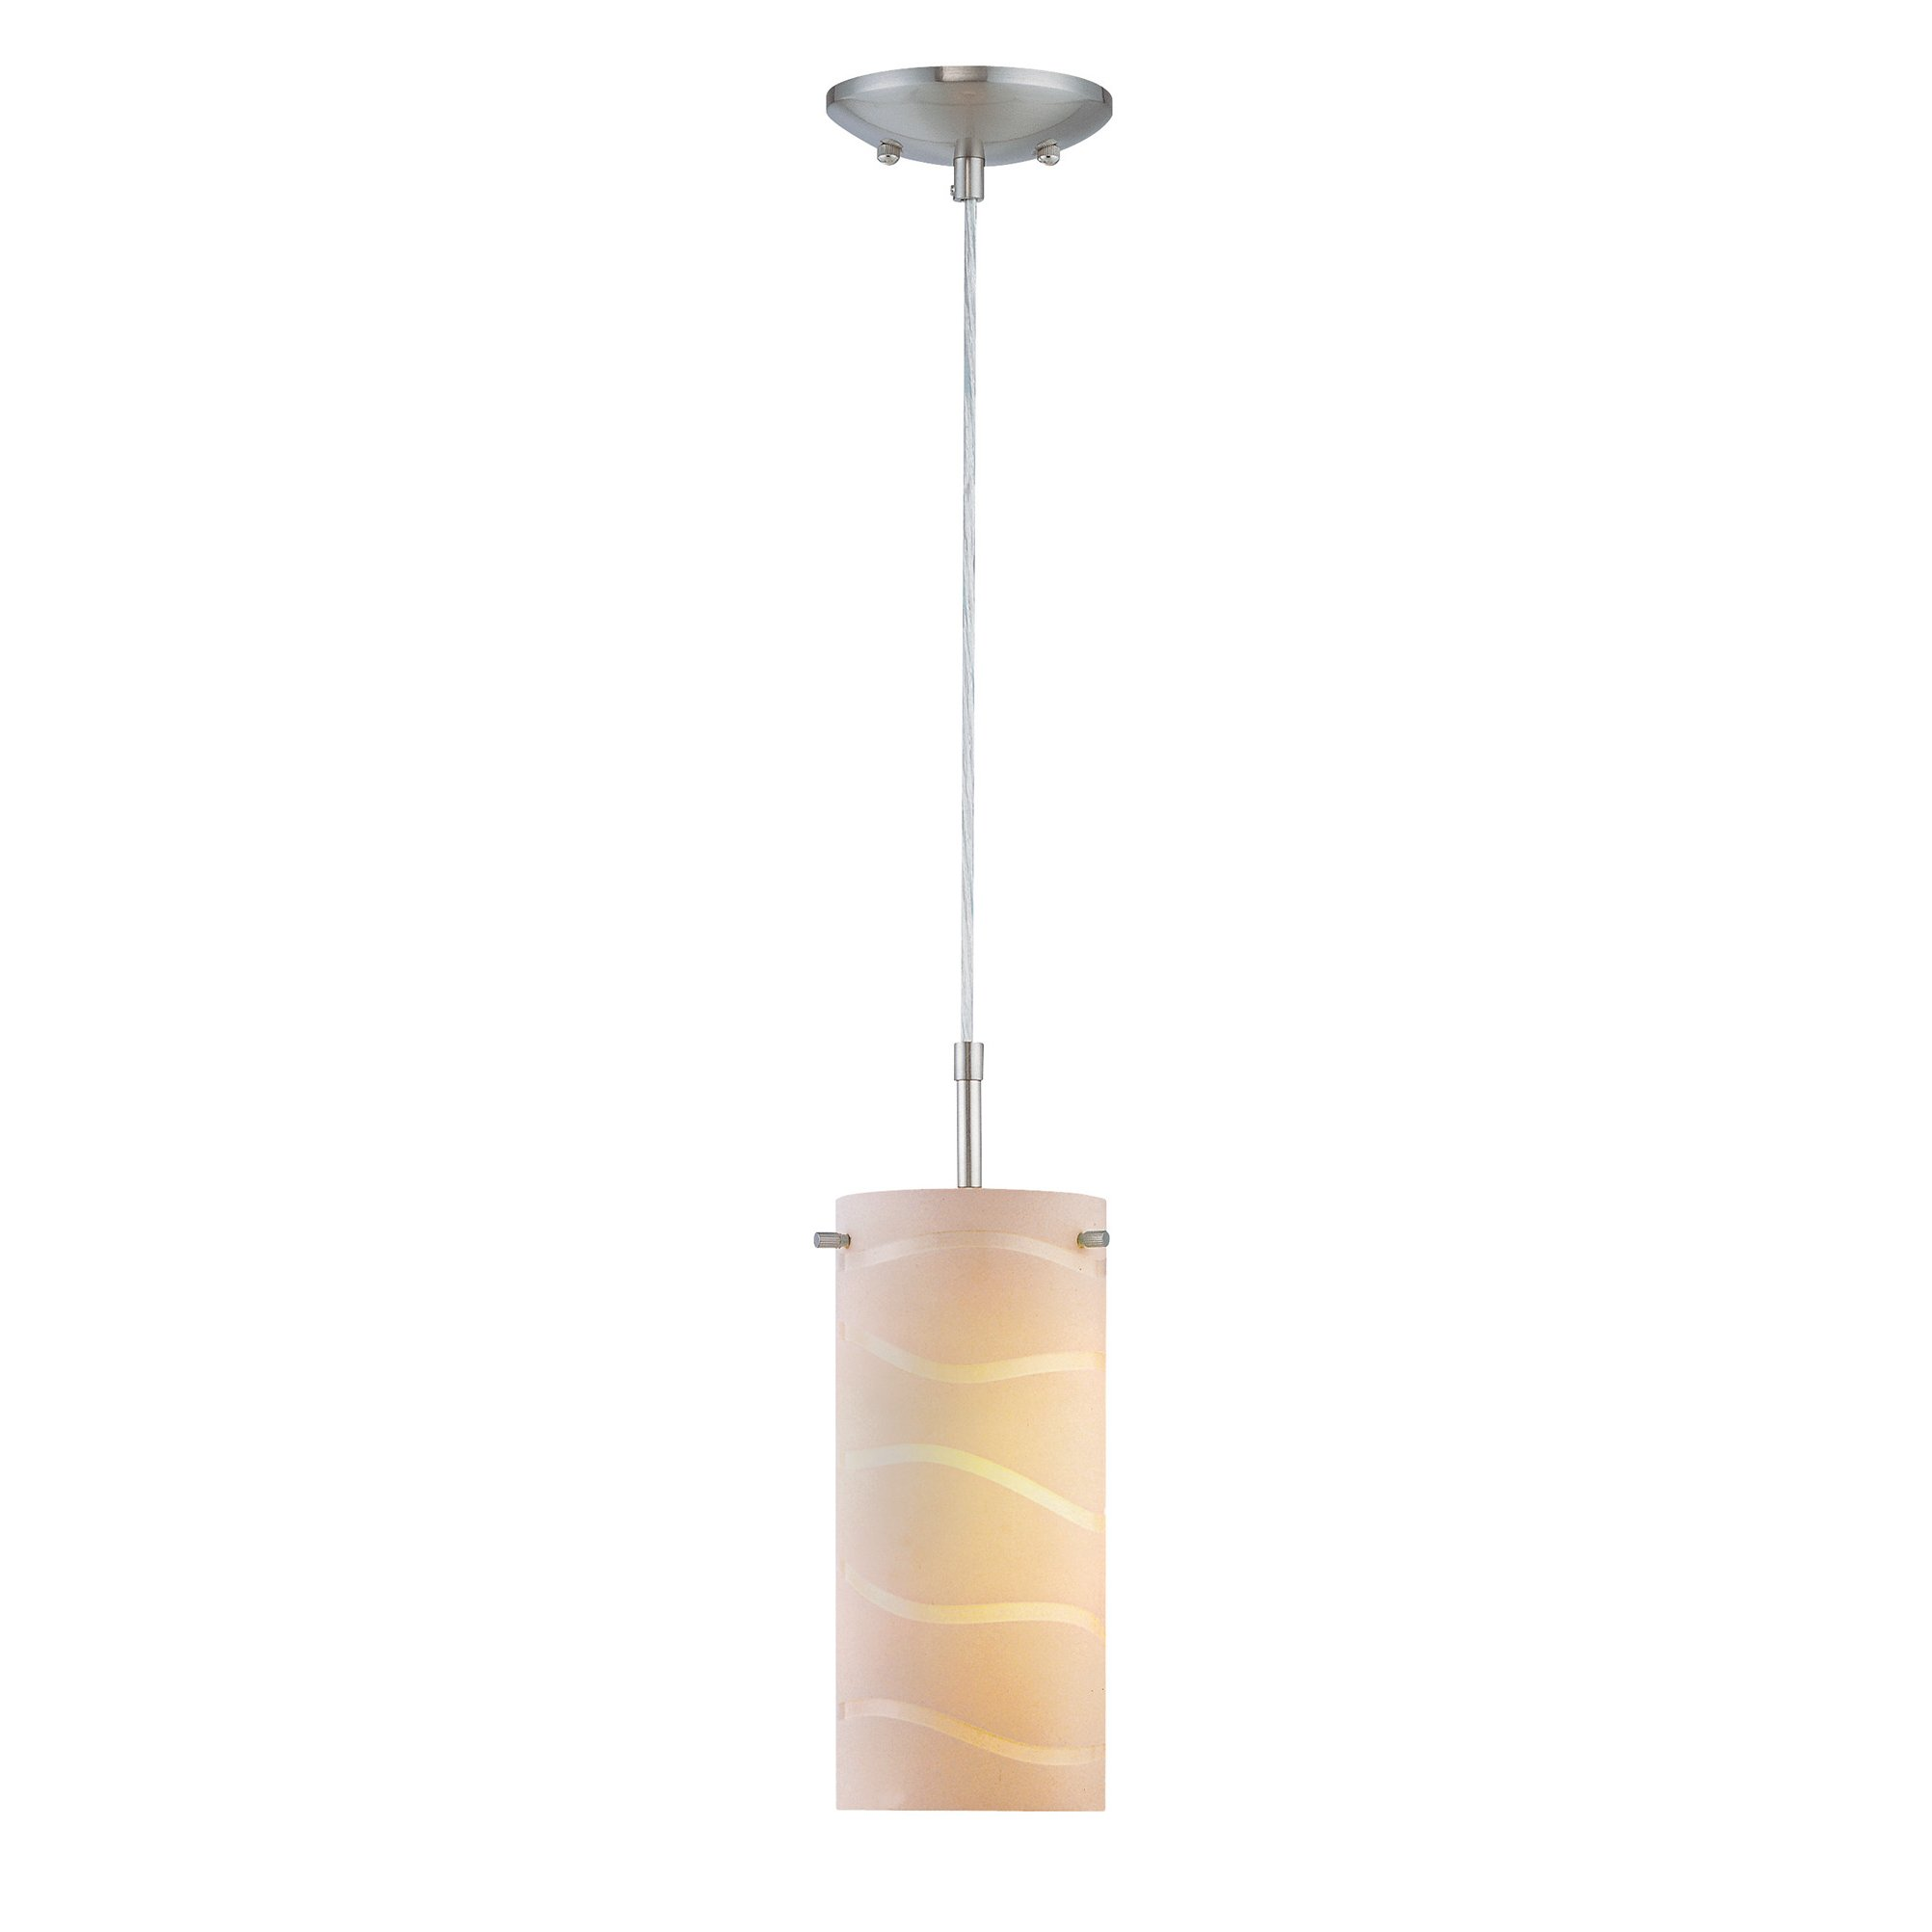 Pendant Lamp with White Glass Shade - Pacifica